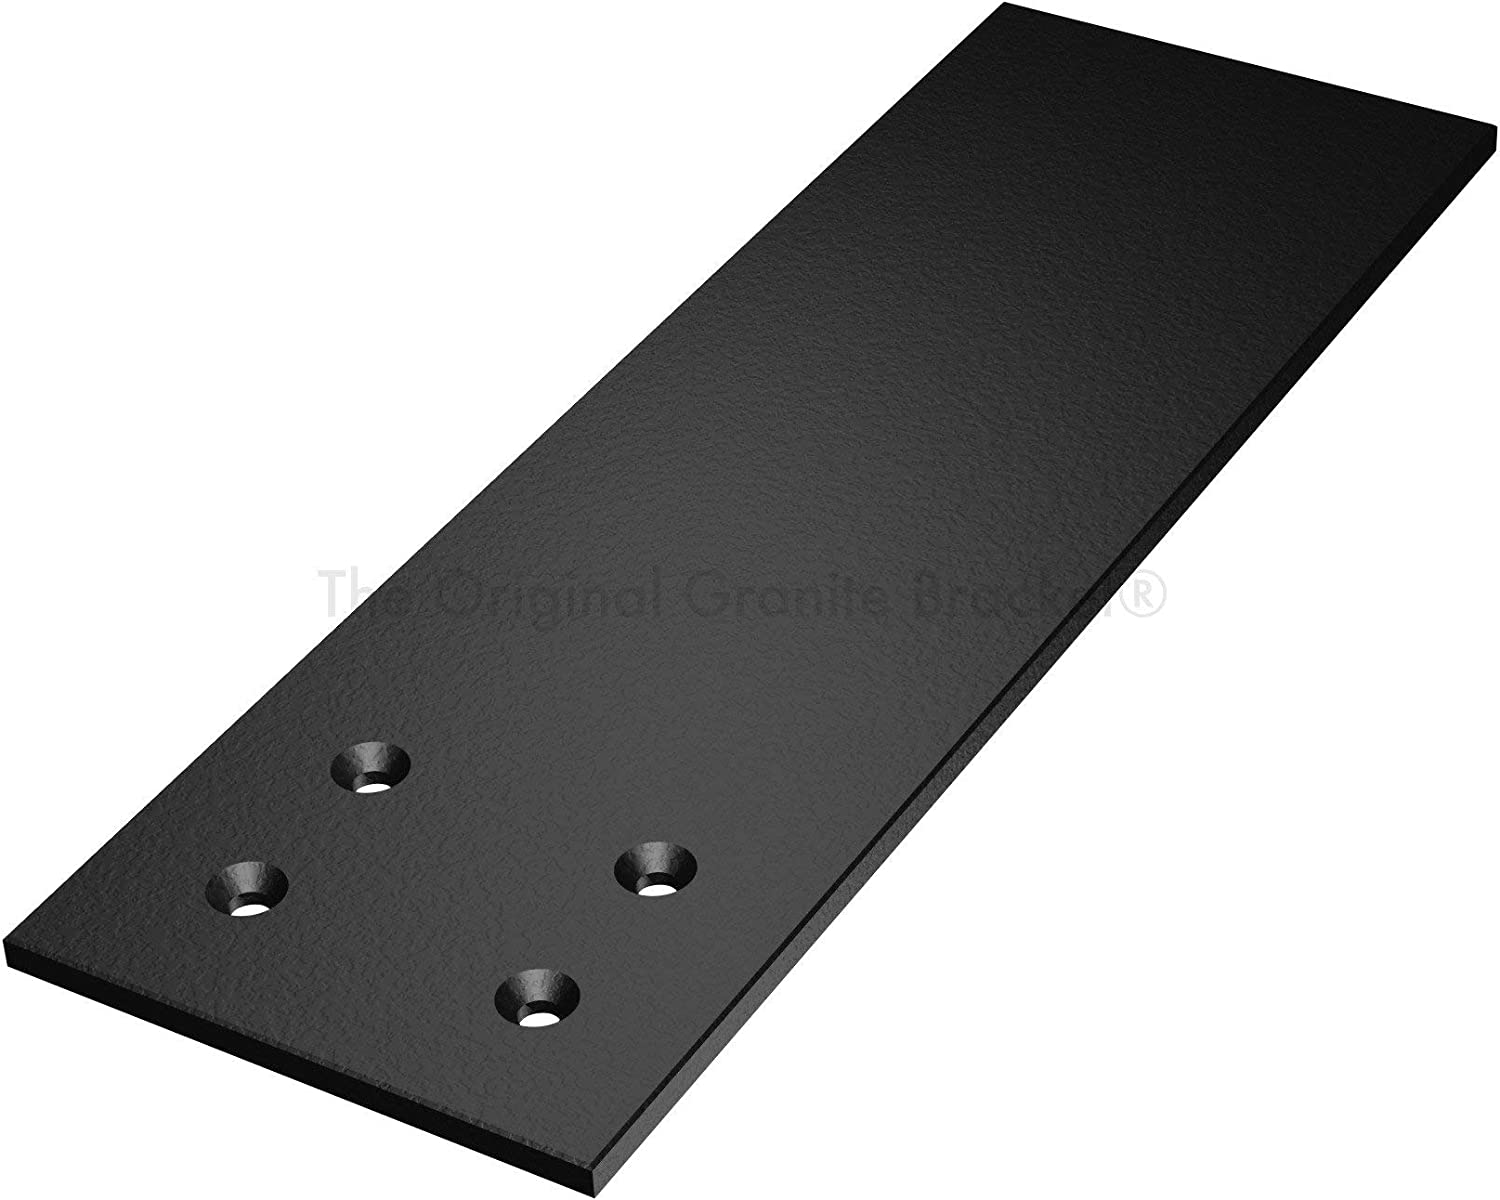 San Diego Mall Solid Heavy Duty Steel Countertop Support 20 Bracket Many popular brands X inch 4 in